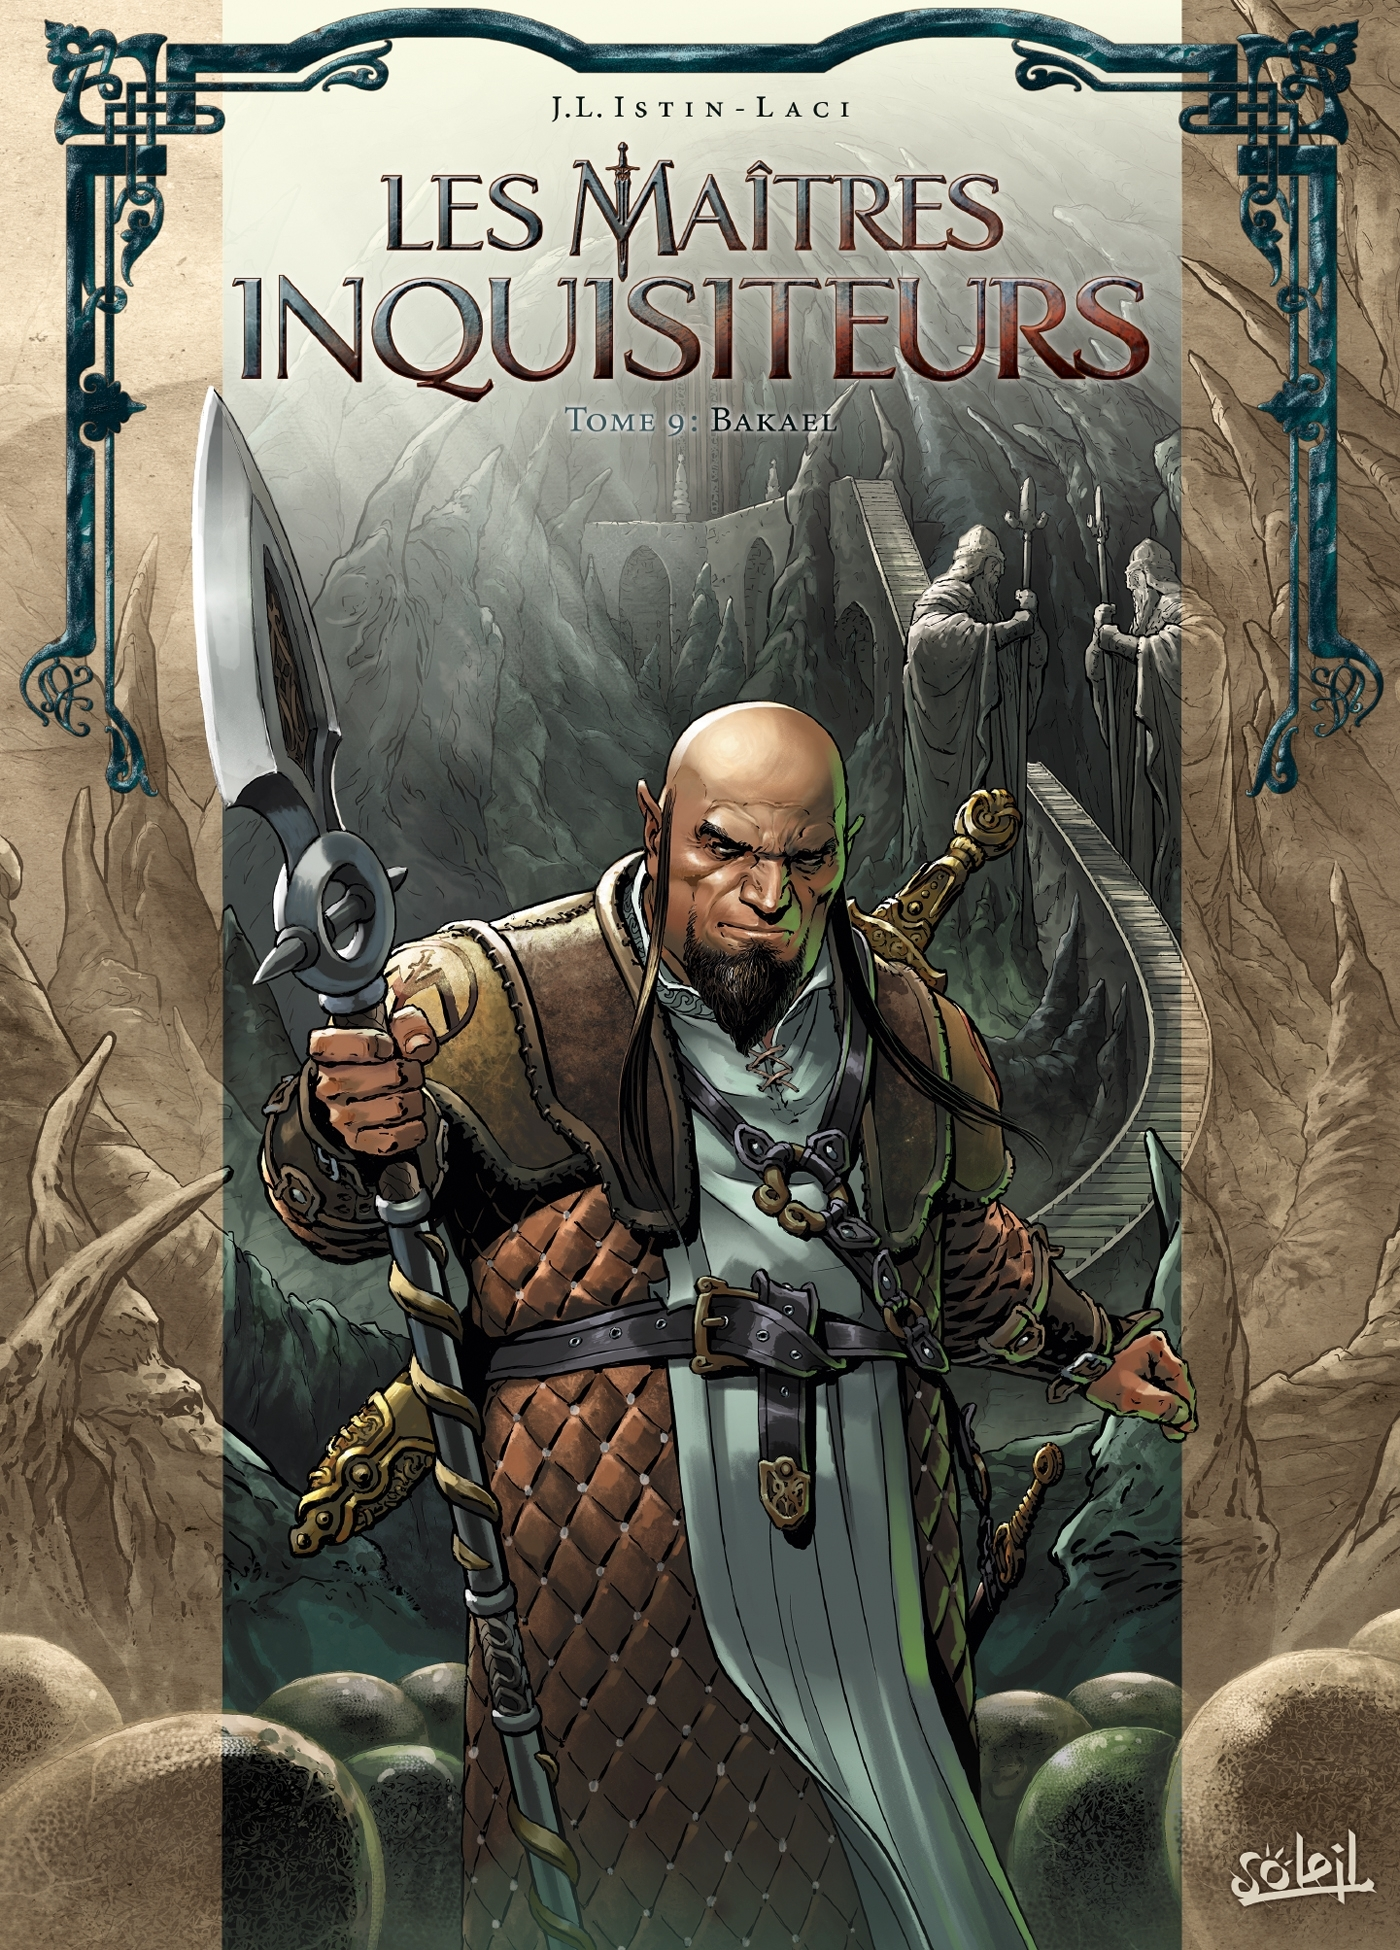 MAITRES INQUISITEURS 09 - BAKAEL